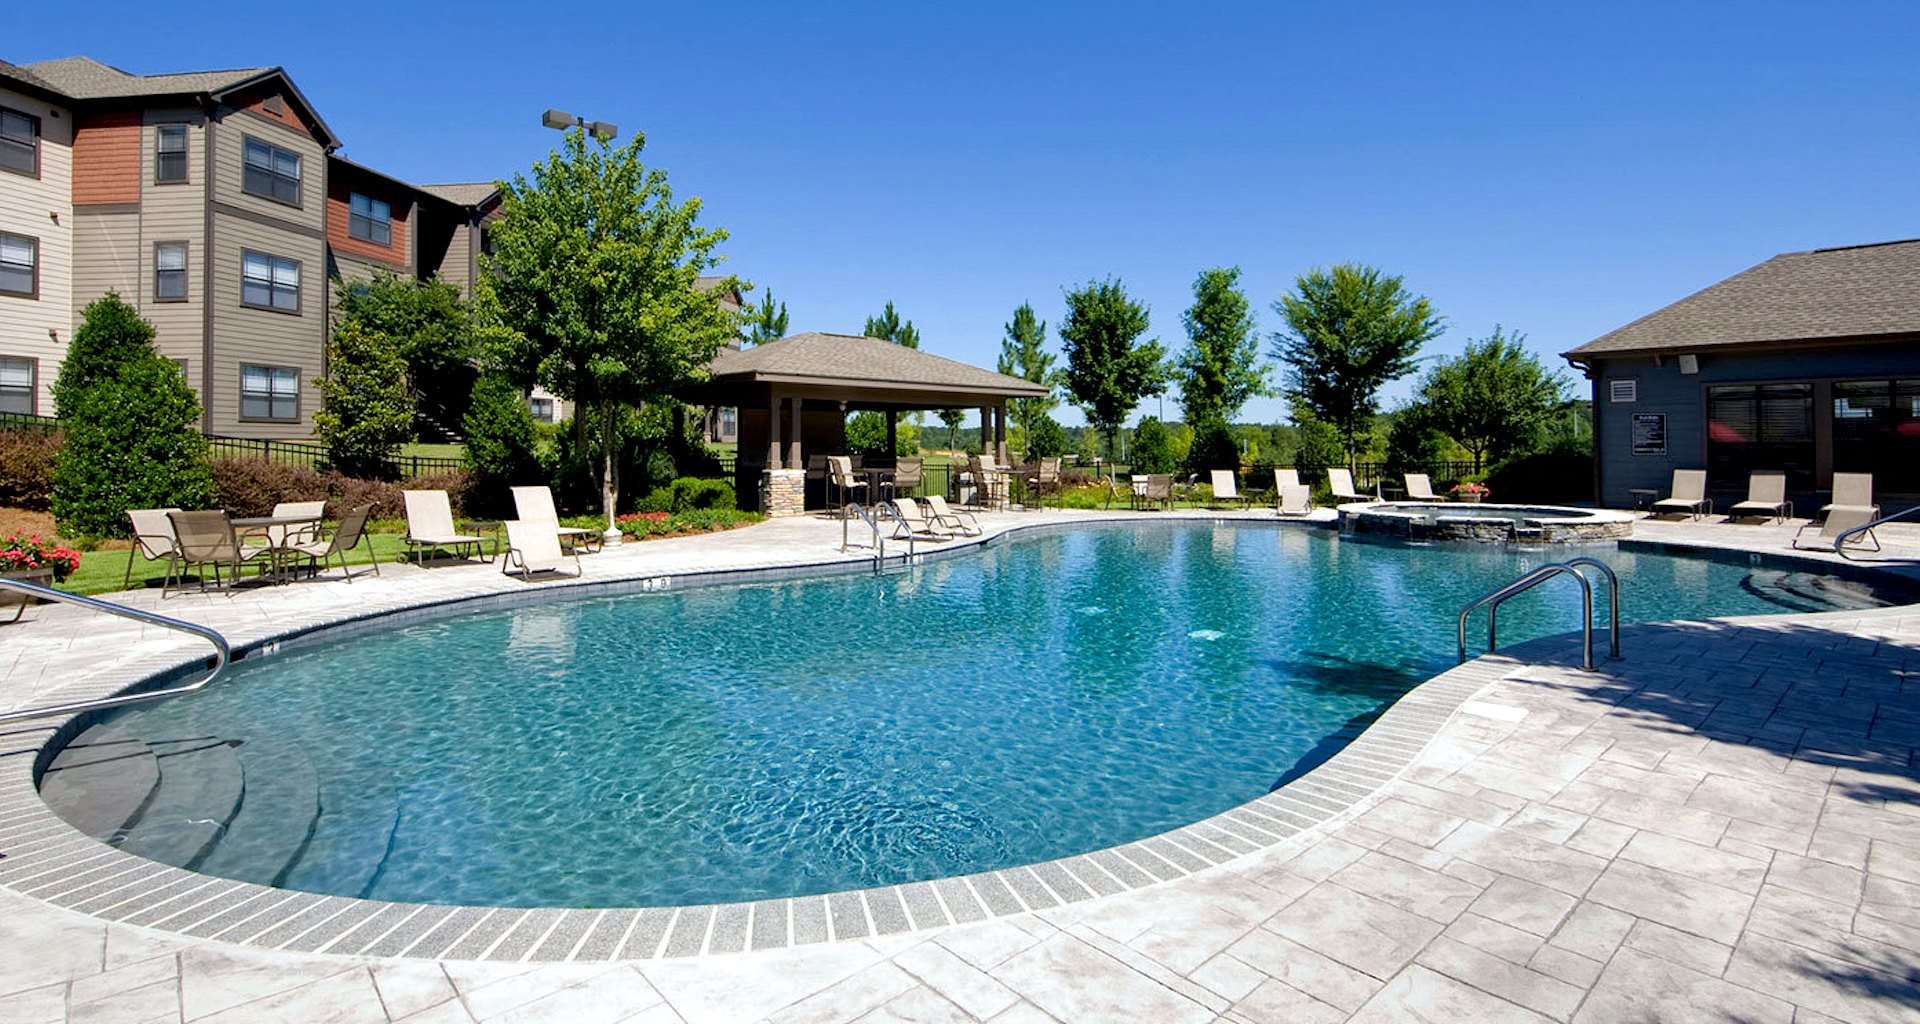 Bridgewater apartments in huntsville, al 35806 pool and sundeck